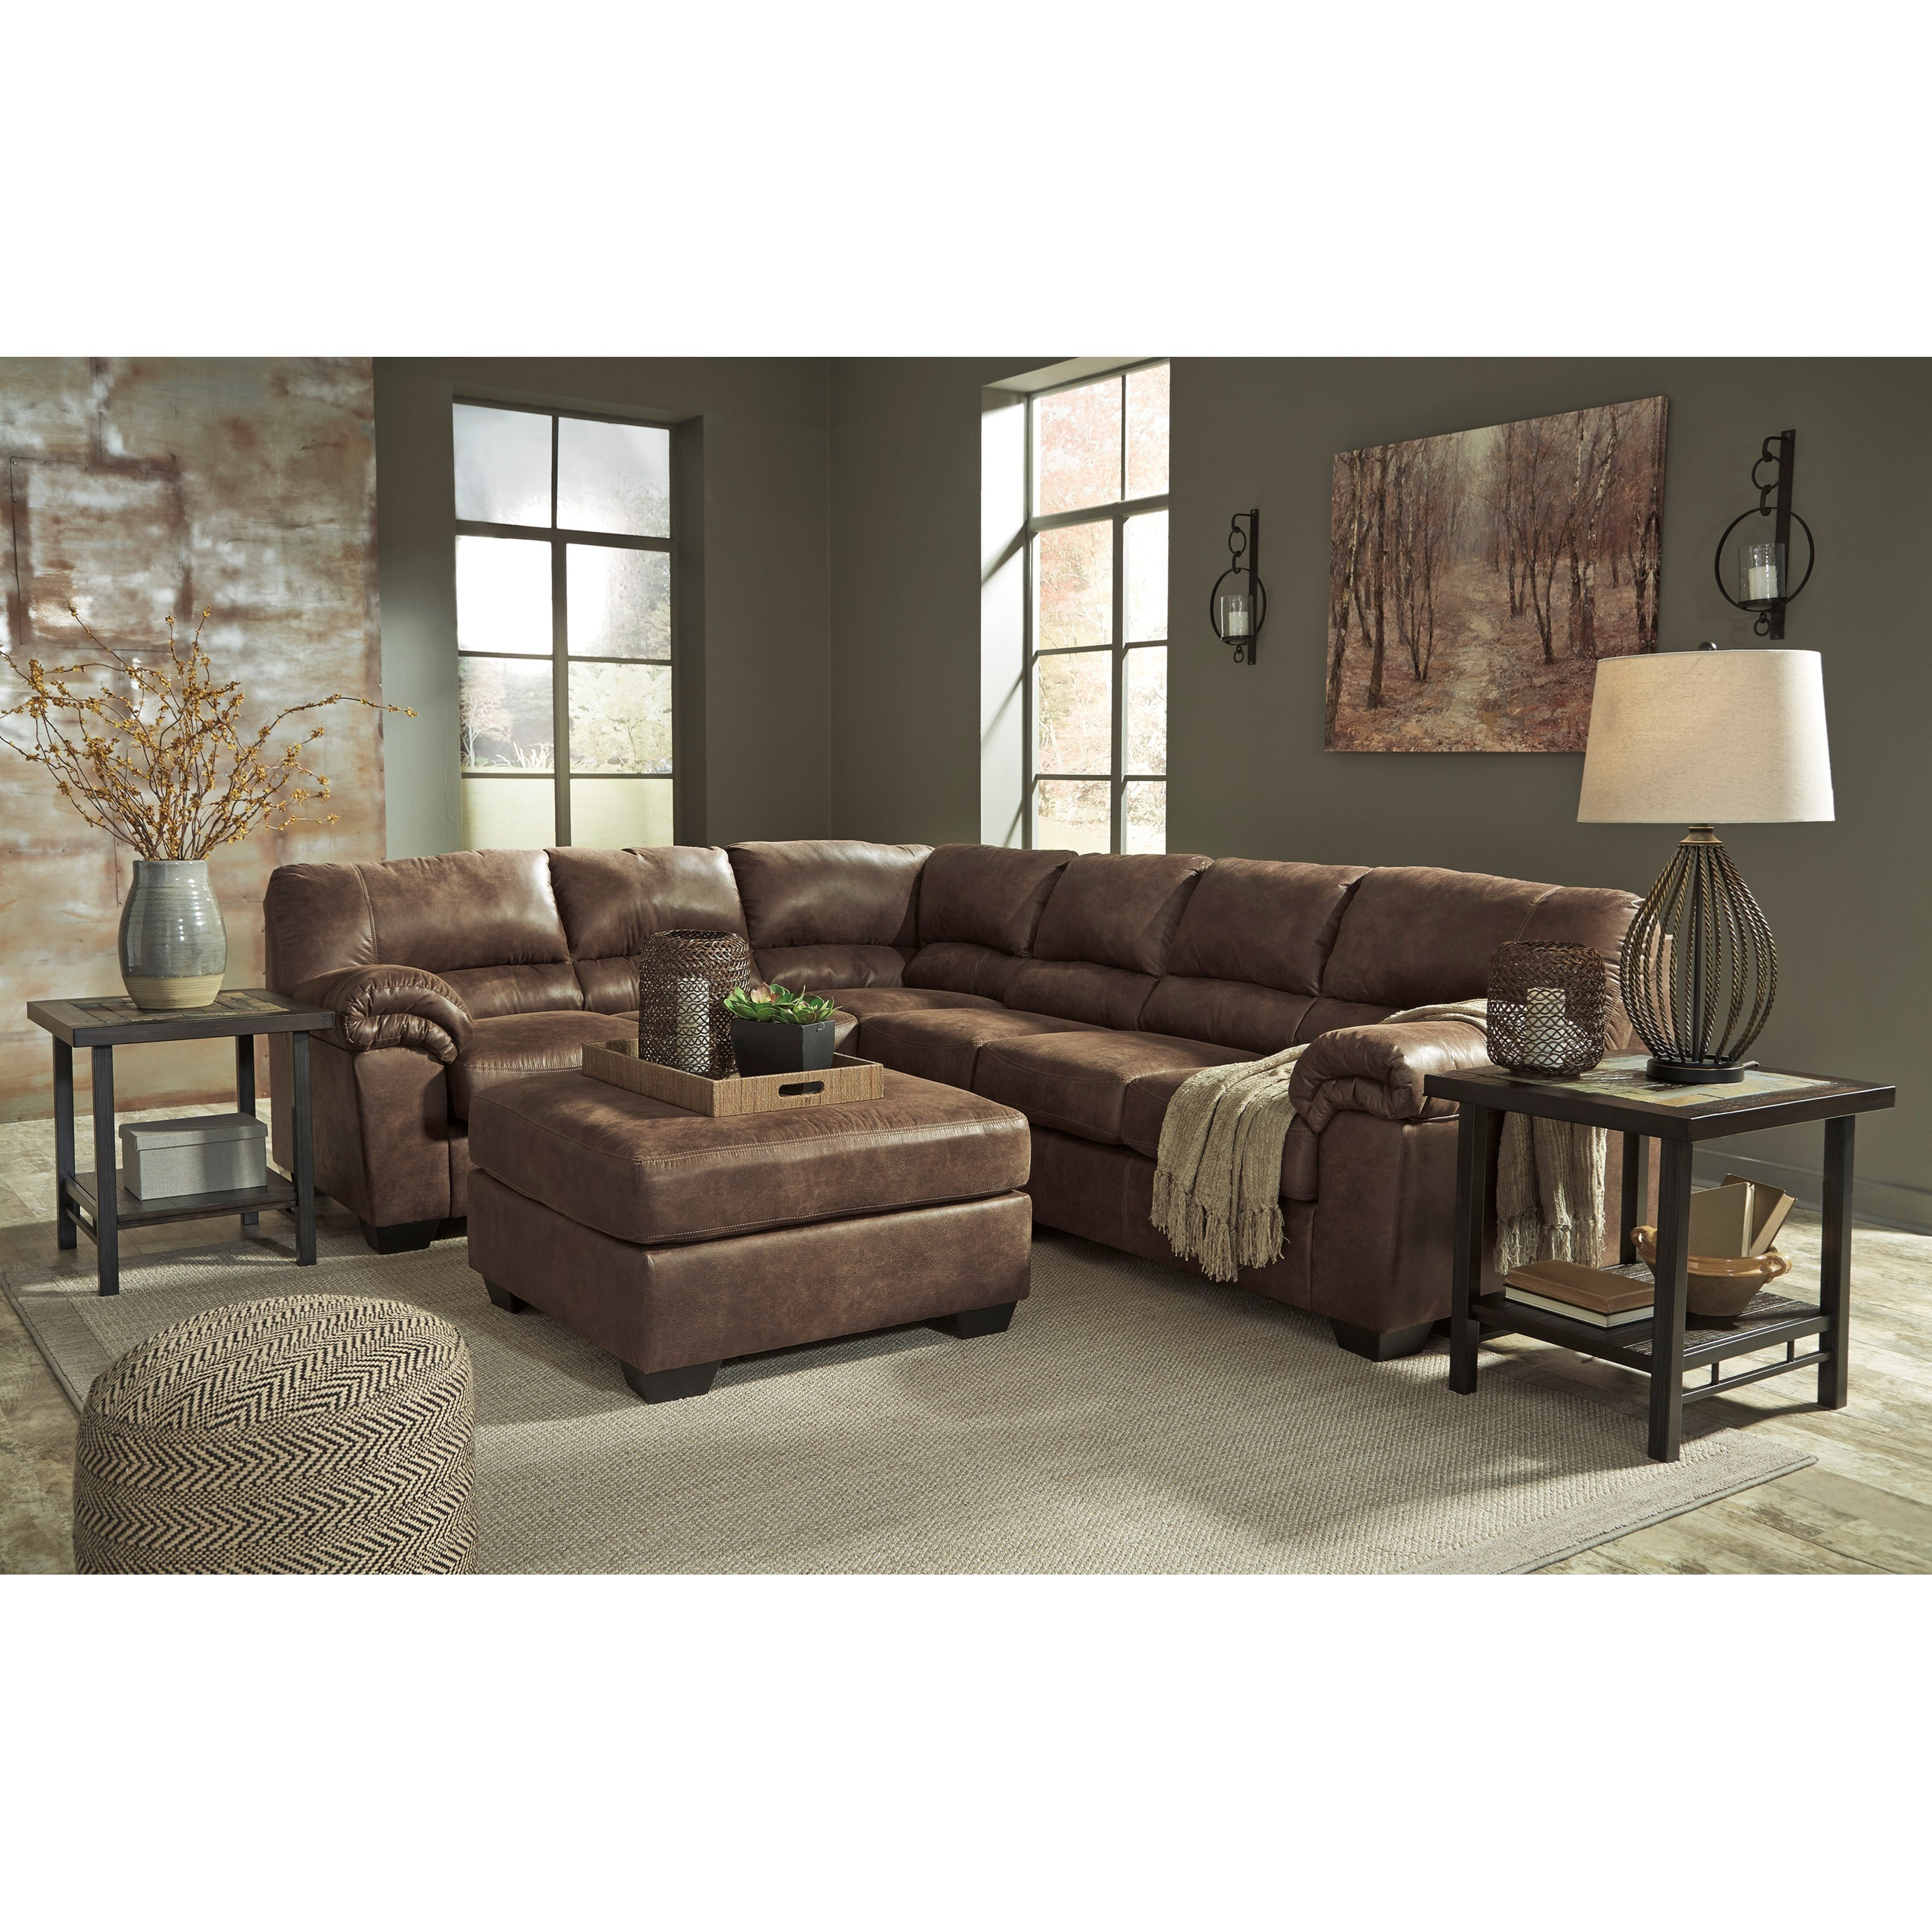 Bladen Stationary Living Room Group by Ashley (Signature Design) at Johnny Janosik